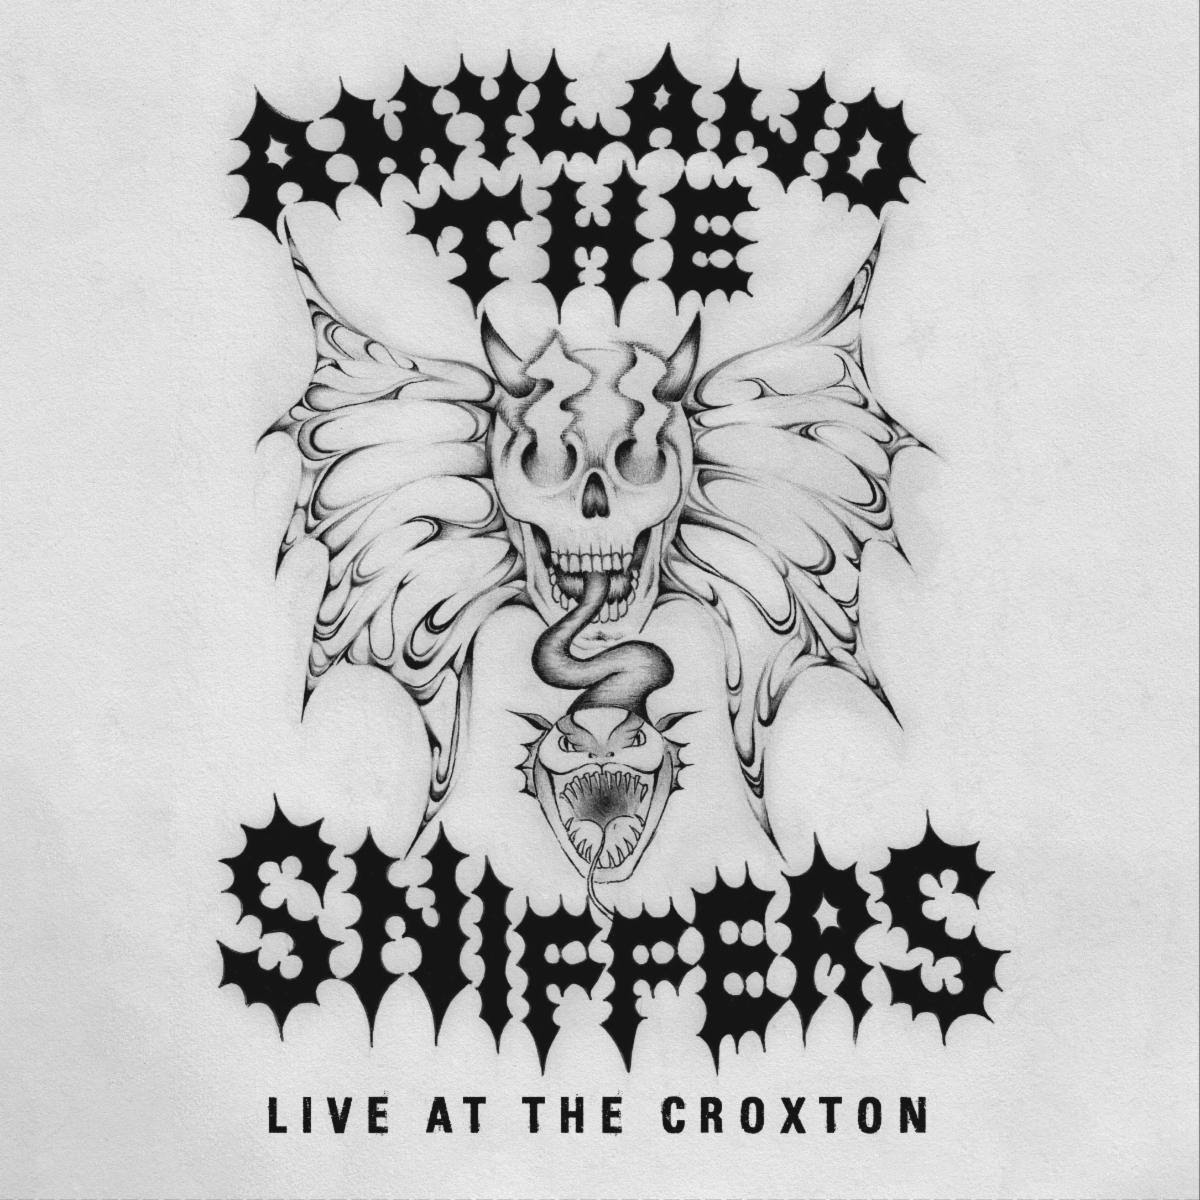 Amyl and The Sniffers have announced they will release Live At The Croxton